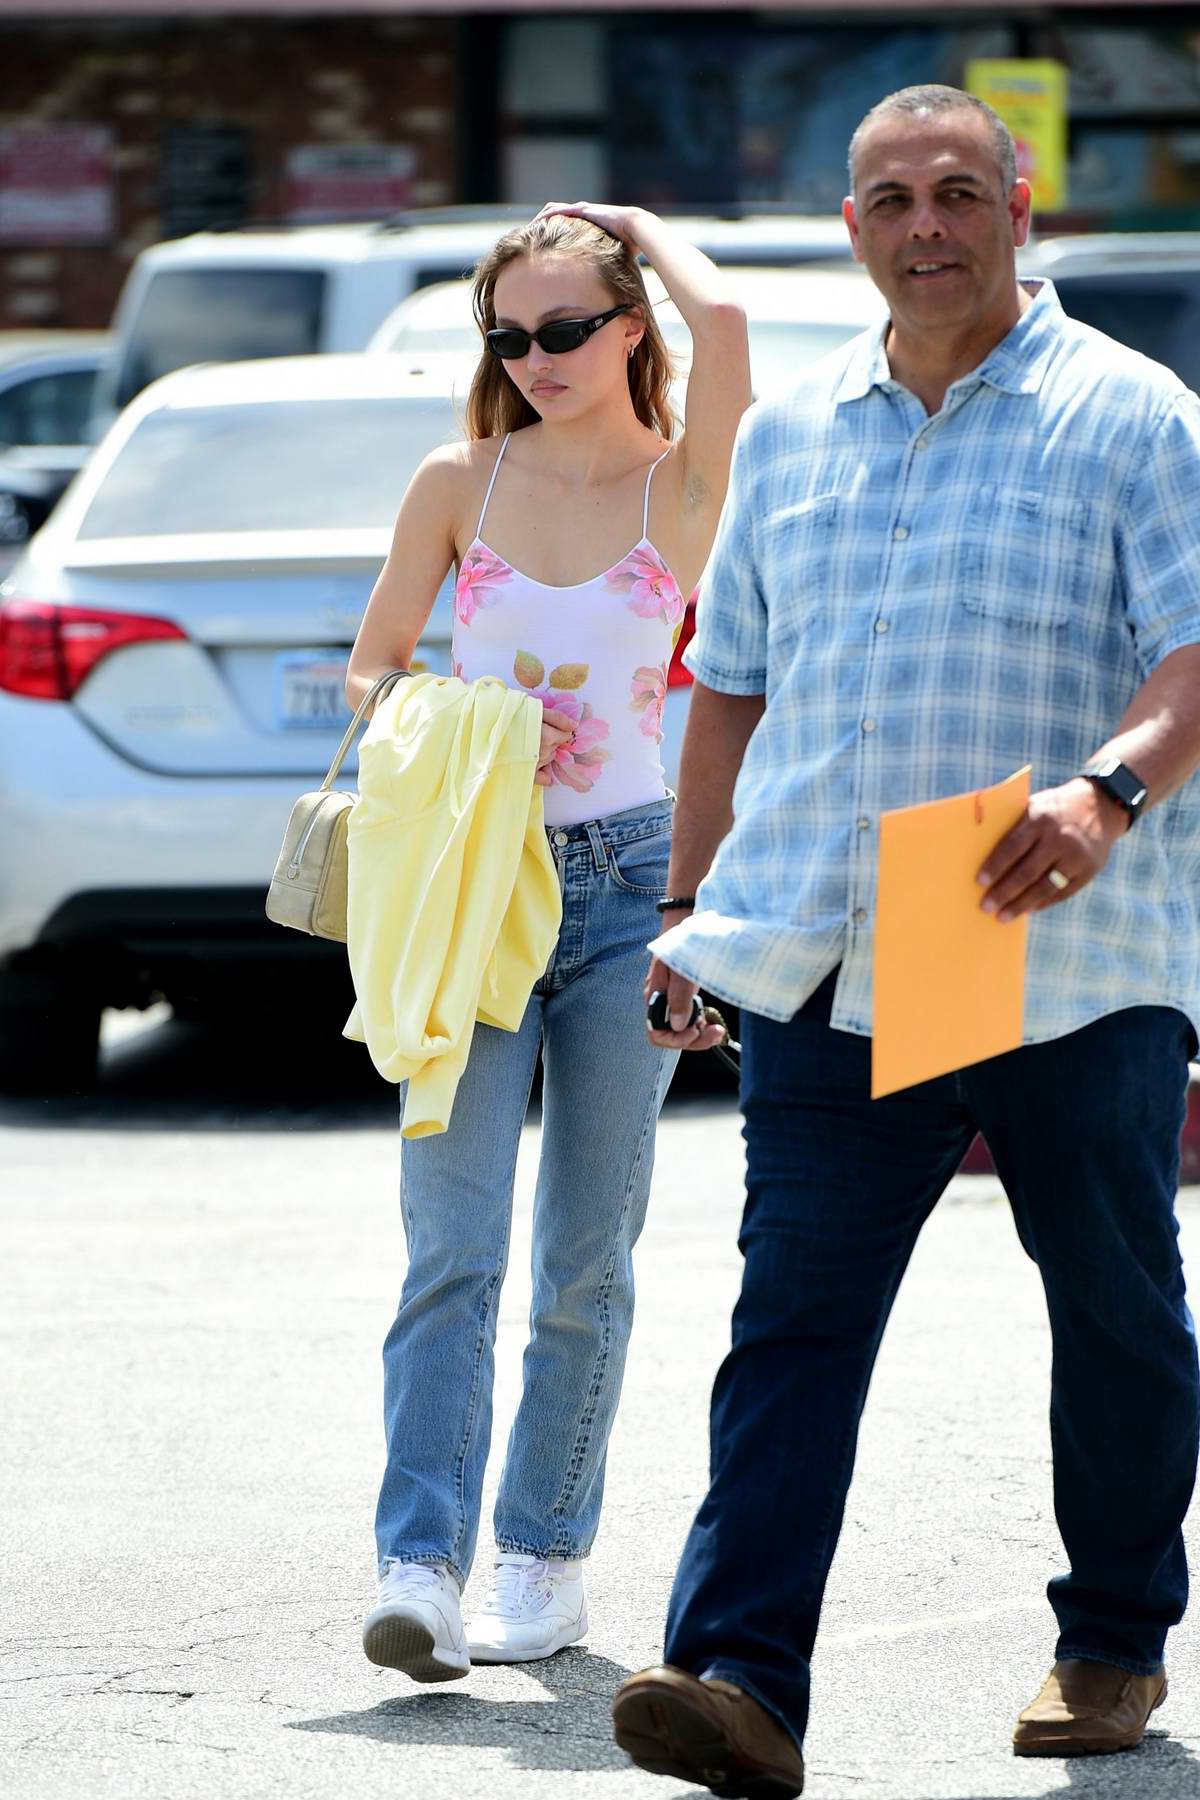 Lily-Rose Depp steps out in a floral tank top, jeans and Reebok sneakers as she run errands with her driver in Los Angeles